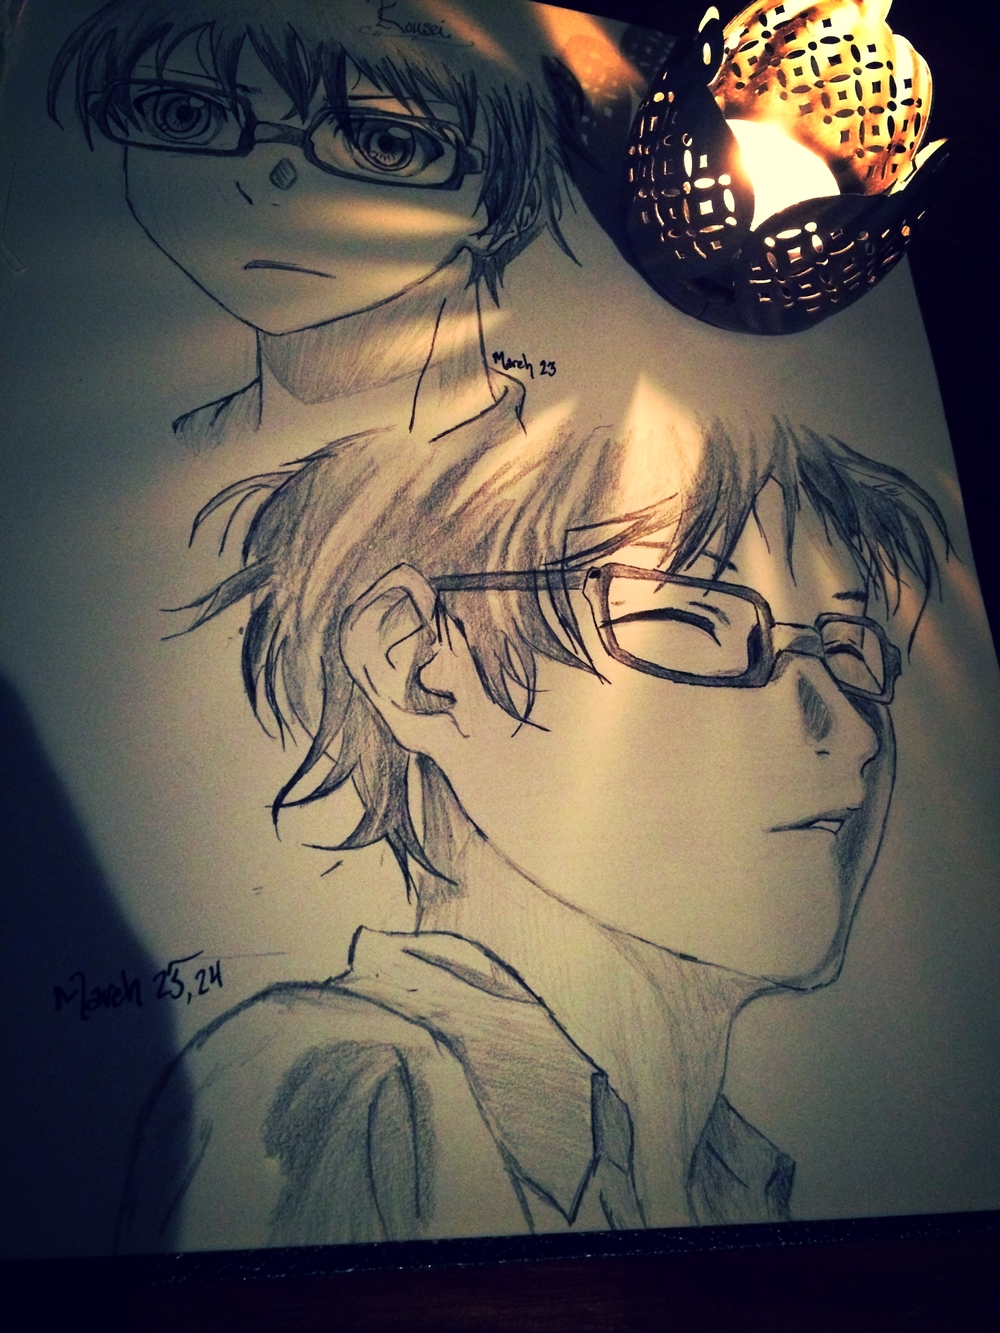 Some sketches I did of Kousei. Picking up graphite for once instead of ink. Very odd stuff, graphite.